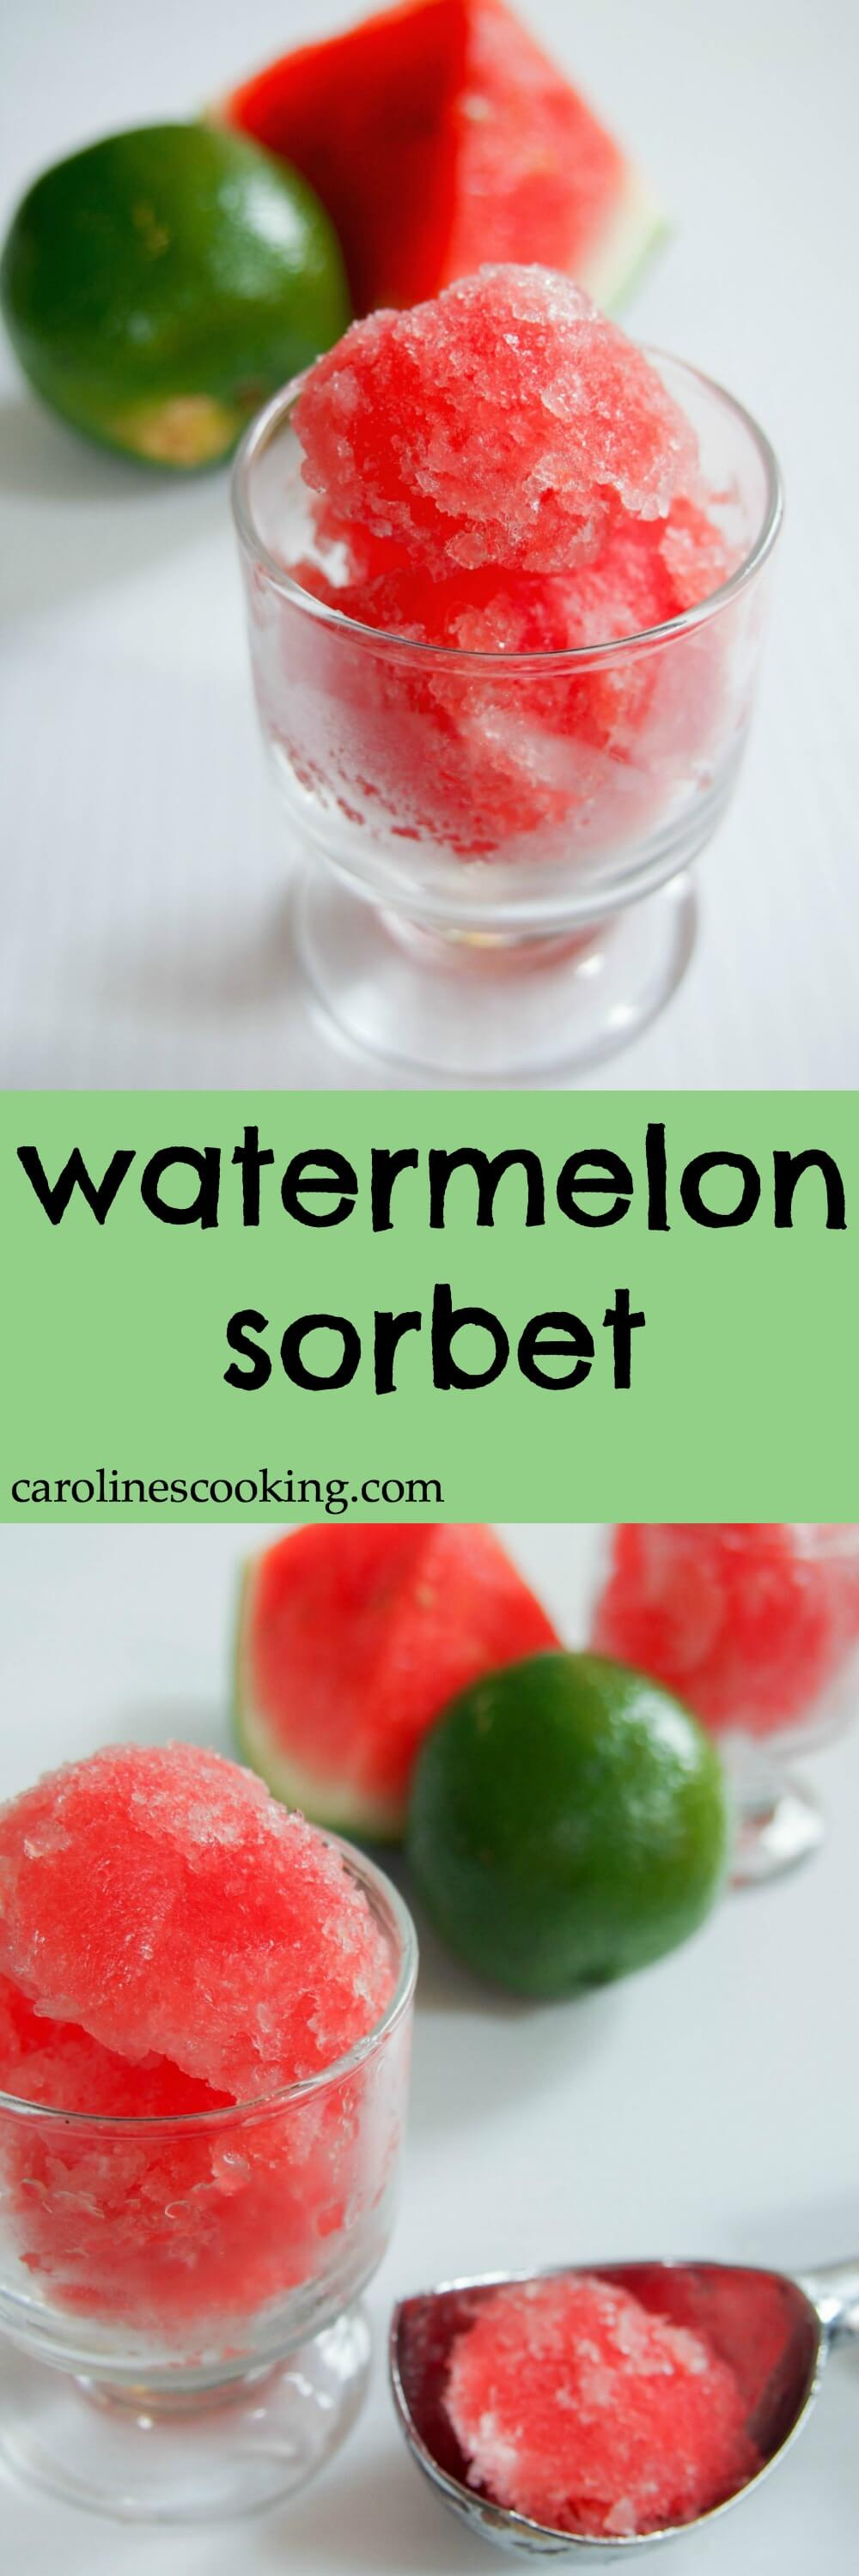 This watermelon sorbet is a refreshing and delicious frozen treat. Perfect for your Cinco de Mayo celebration or any excuse to enjoy. As a bonus, it's really easy to make!